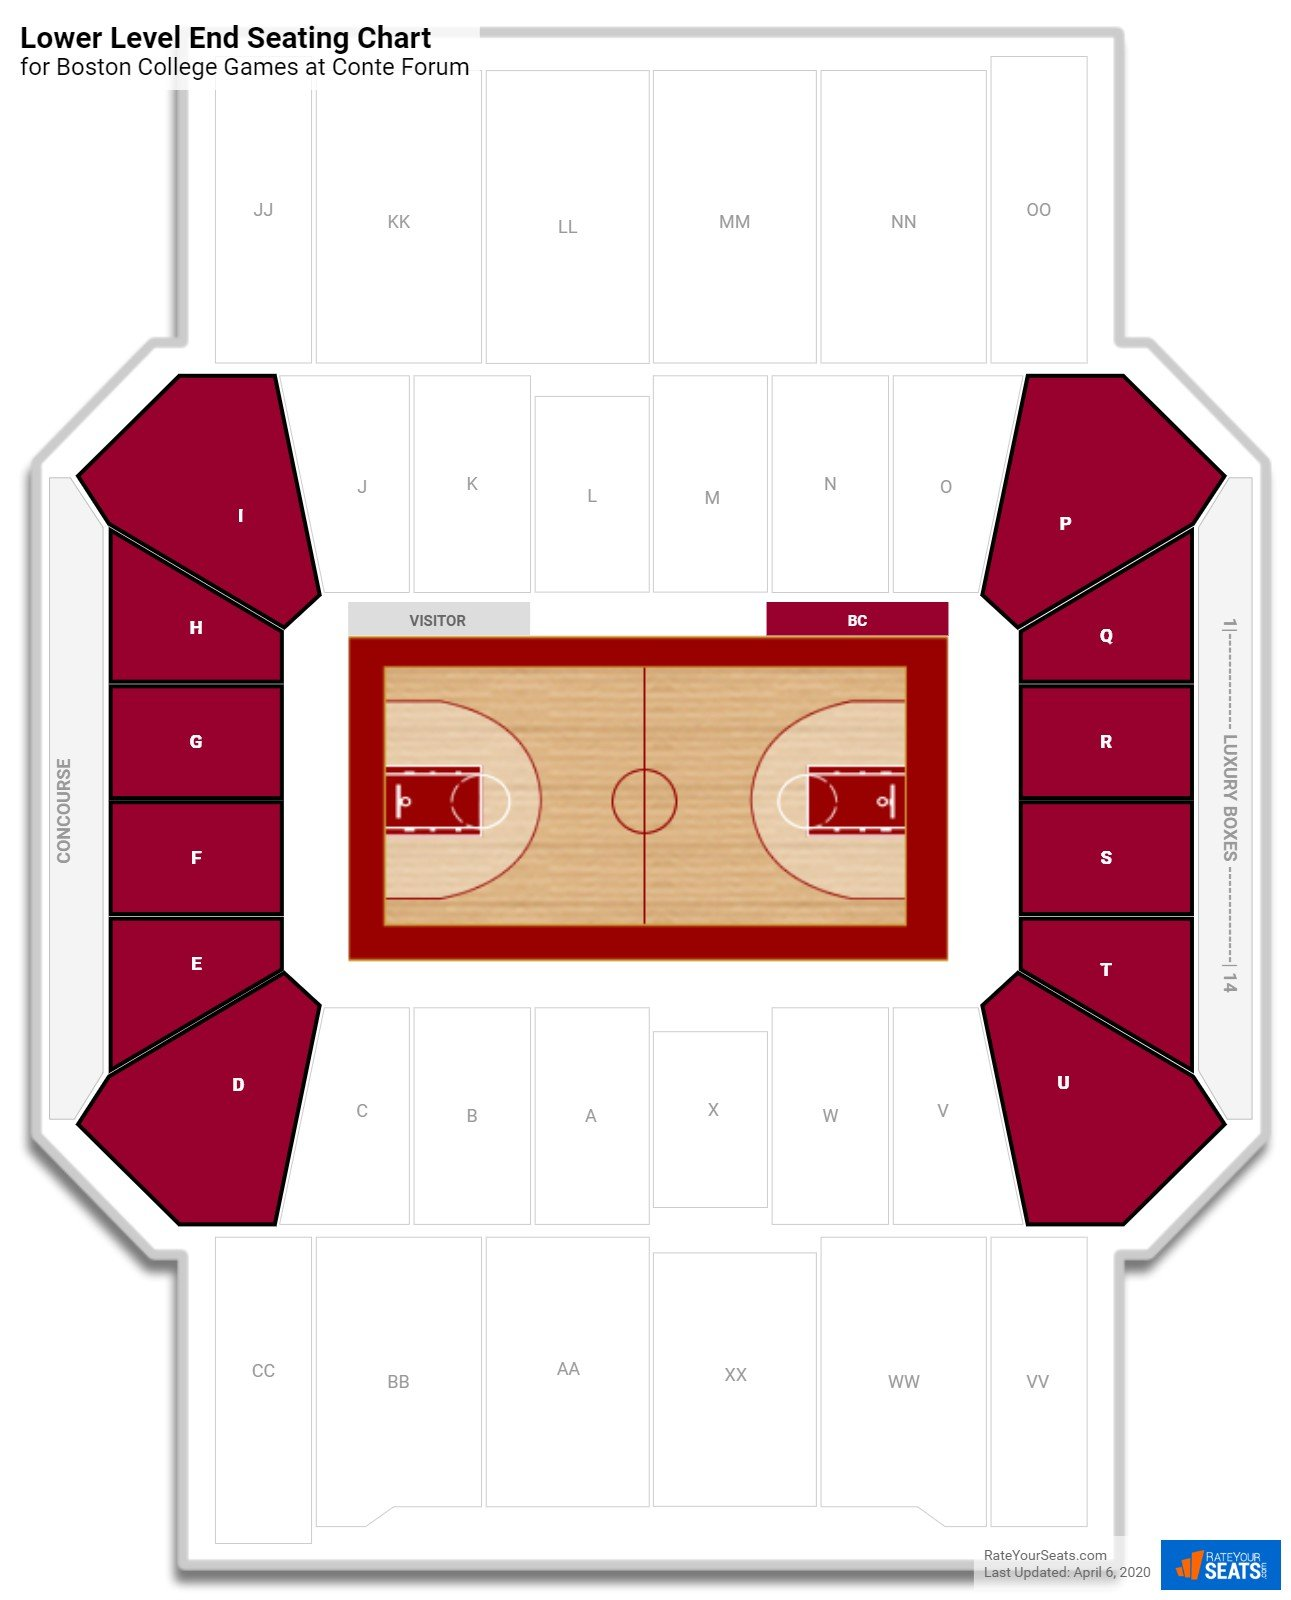 Conte Forum Lower Level End seating chart